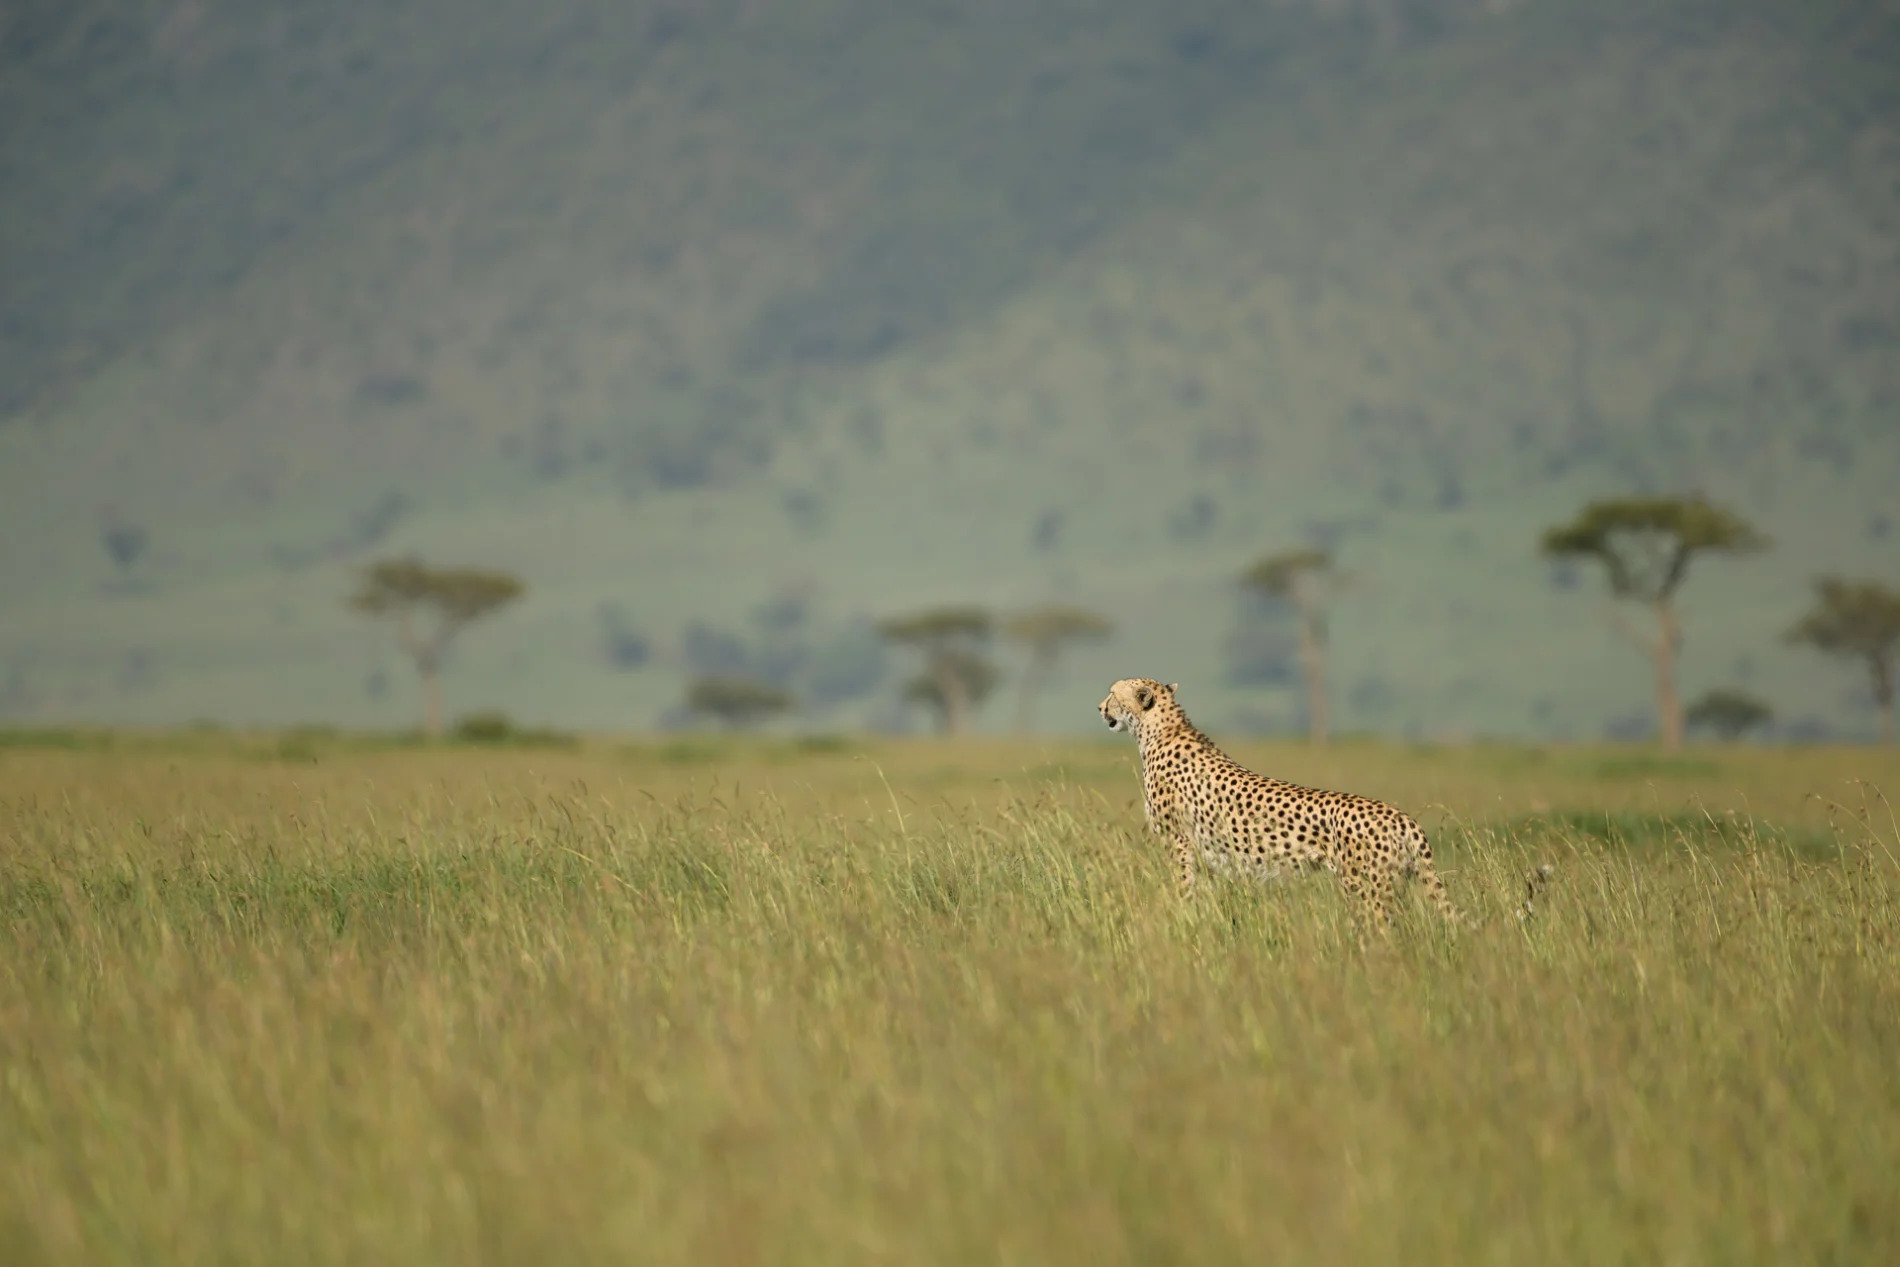 Cheetah Savannah